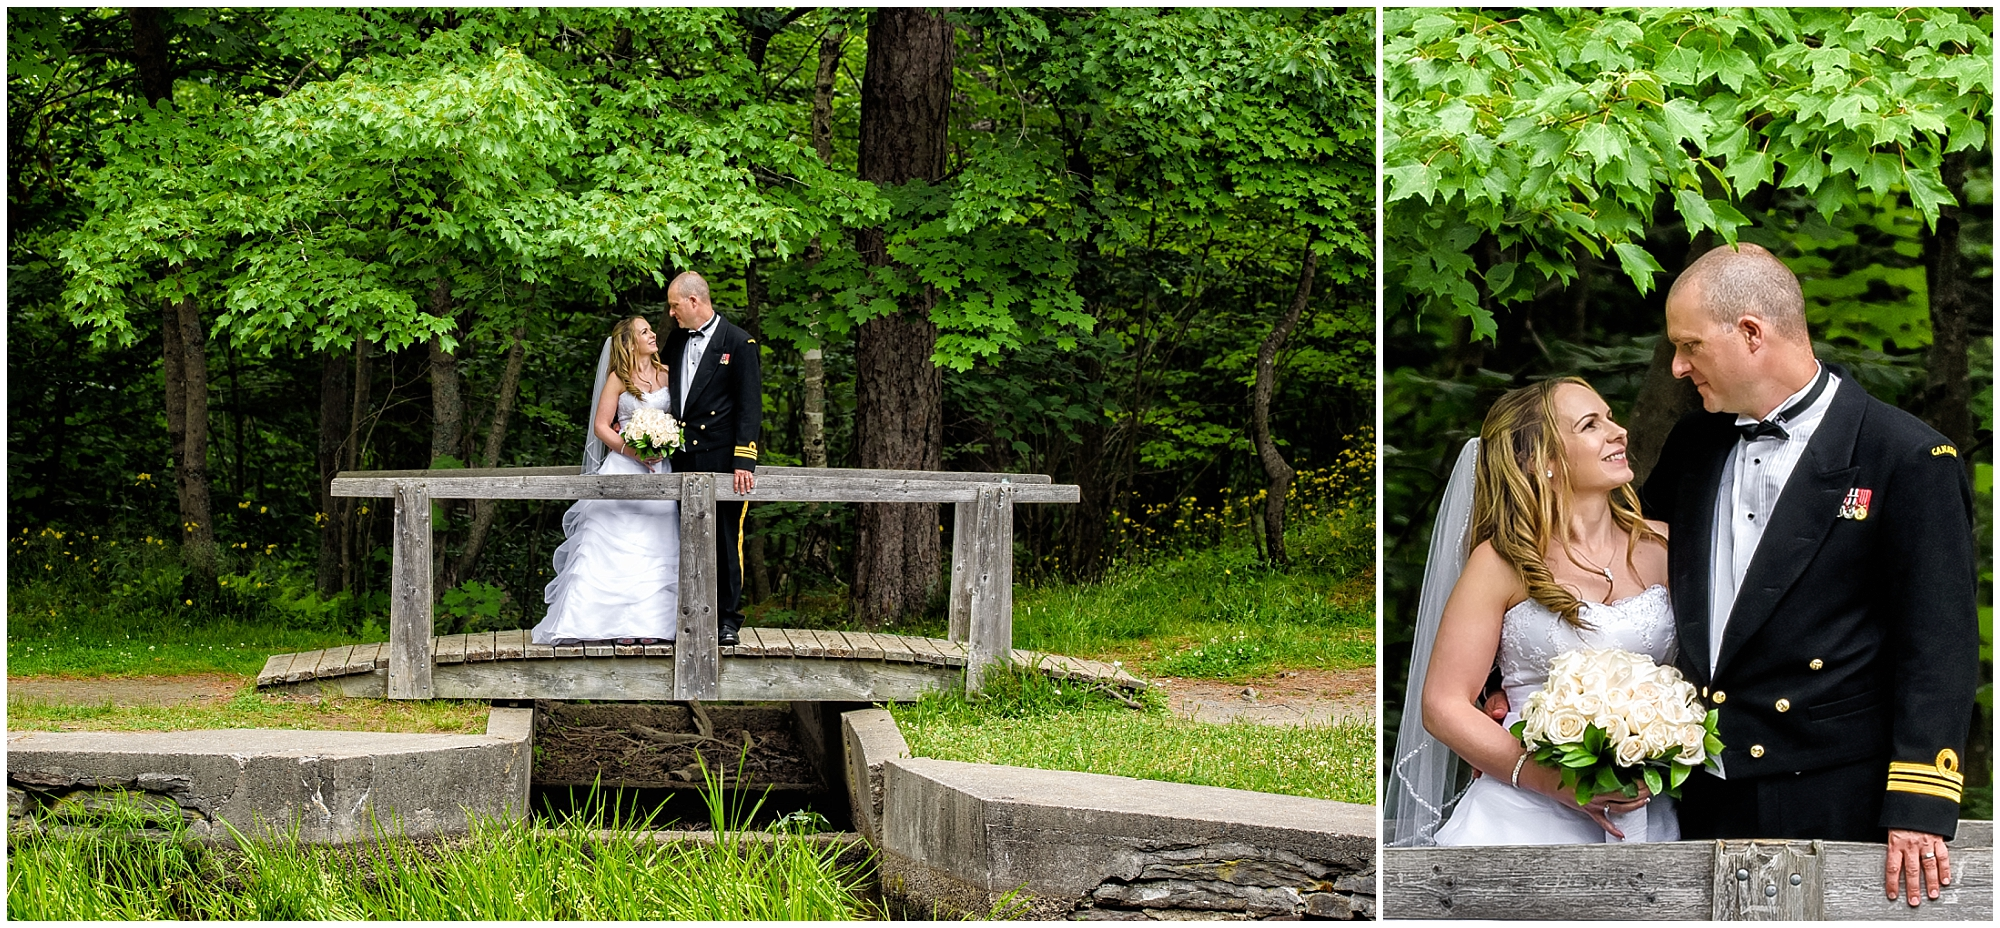 The bride and groom on a wooden bridge posing for their wedding photos at Point Pleasant Park in Haifax, NS.